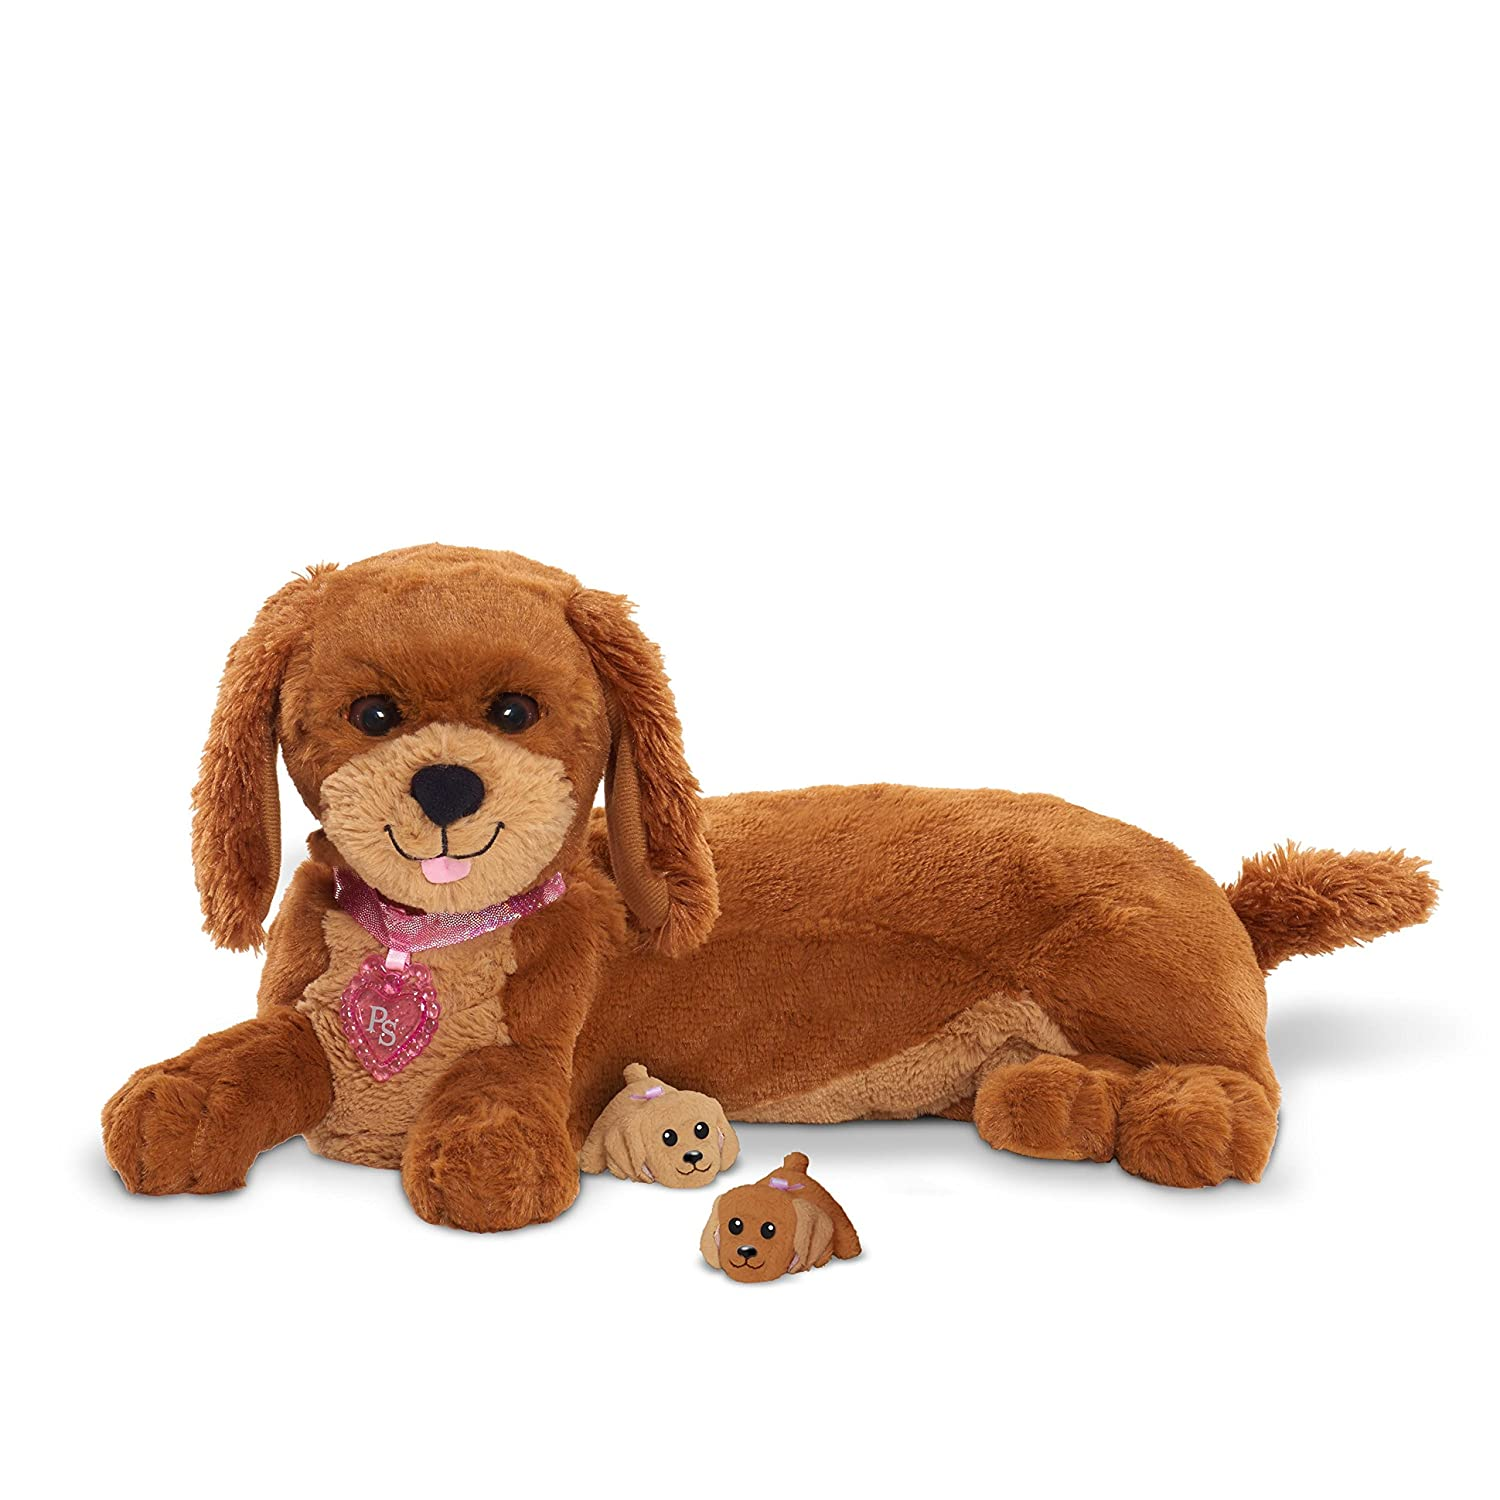 Puppy Surprise Magic Mommy Surprise Animated Plush Toy Brown